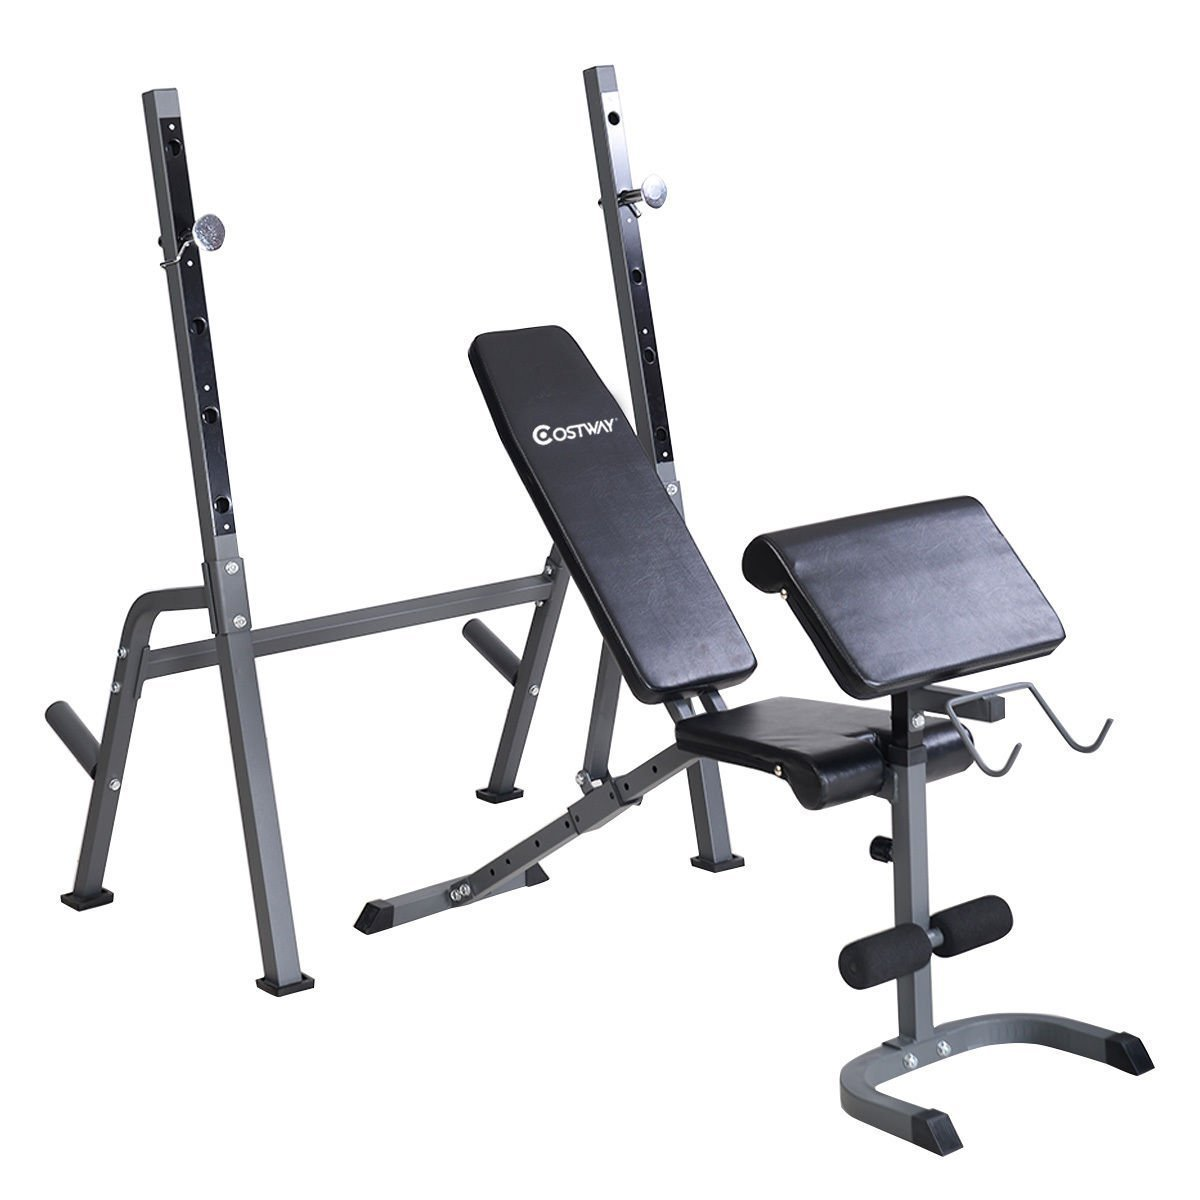 Gymax Adjustable Benches Weight Lifting Benches W/ Rack Olympic Exercise Fitness Equipment Heavy Duty Weight Lifting Bench Set for Strength Training by Gymax